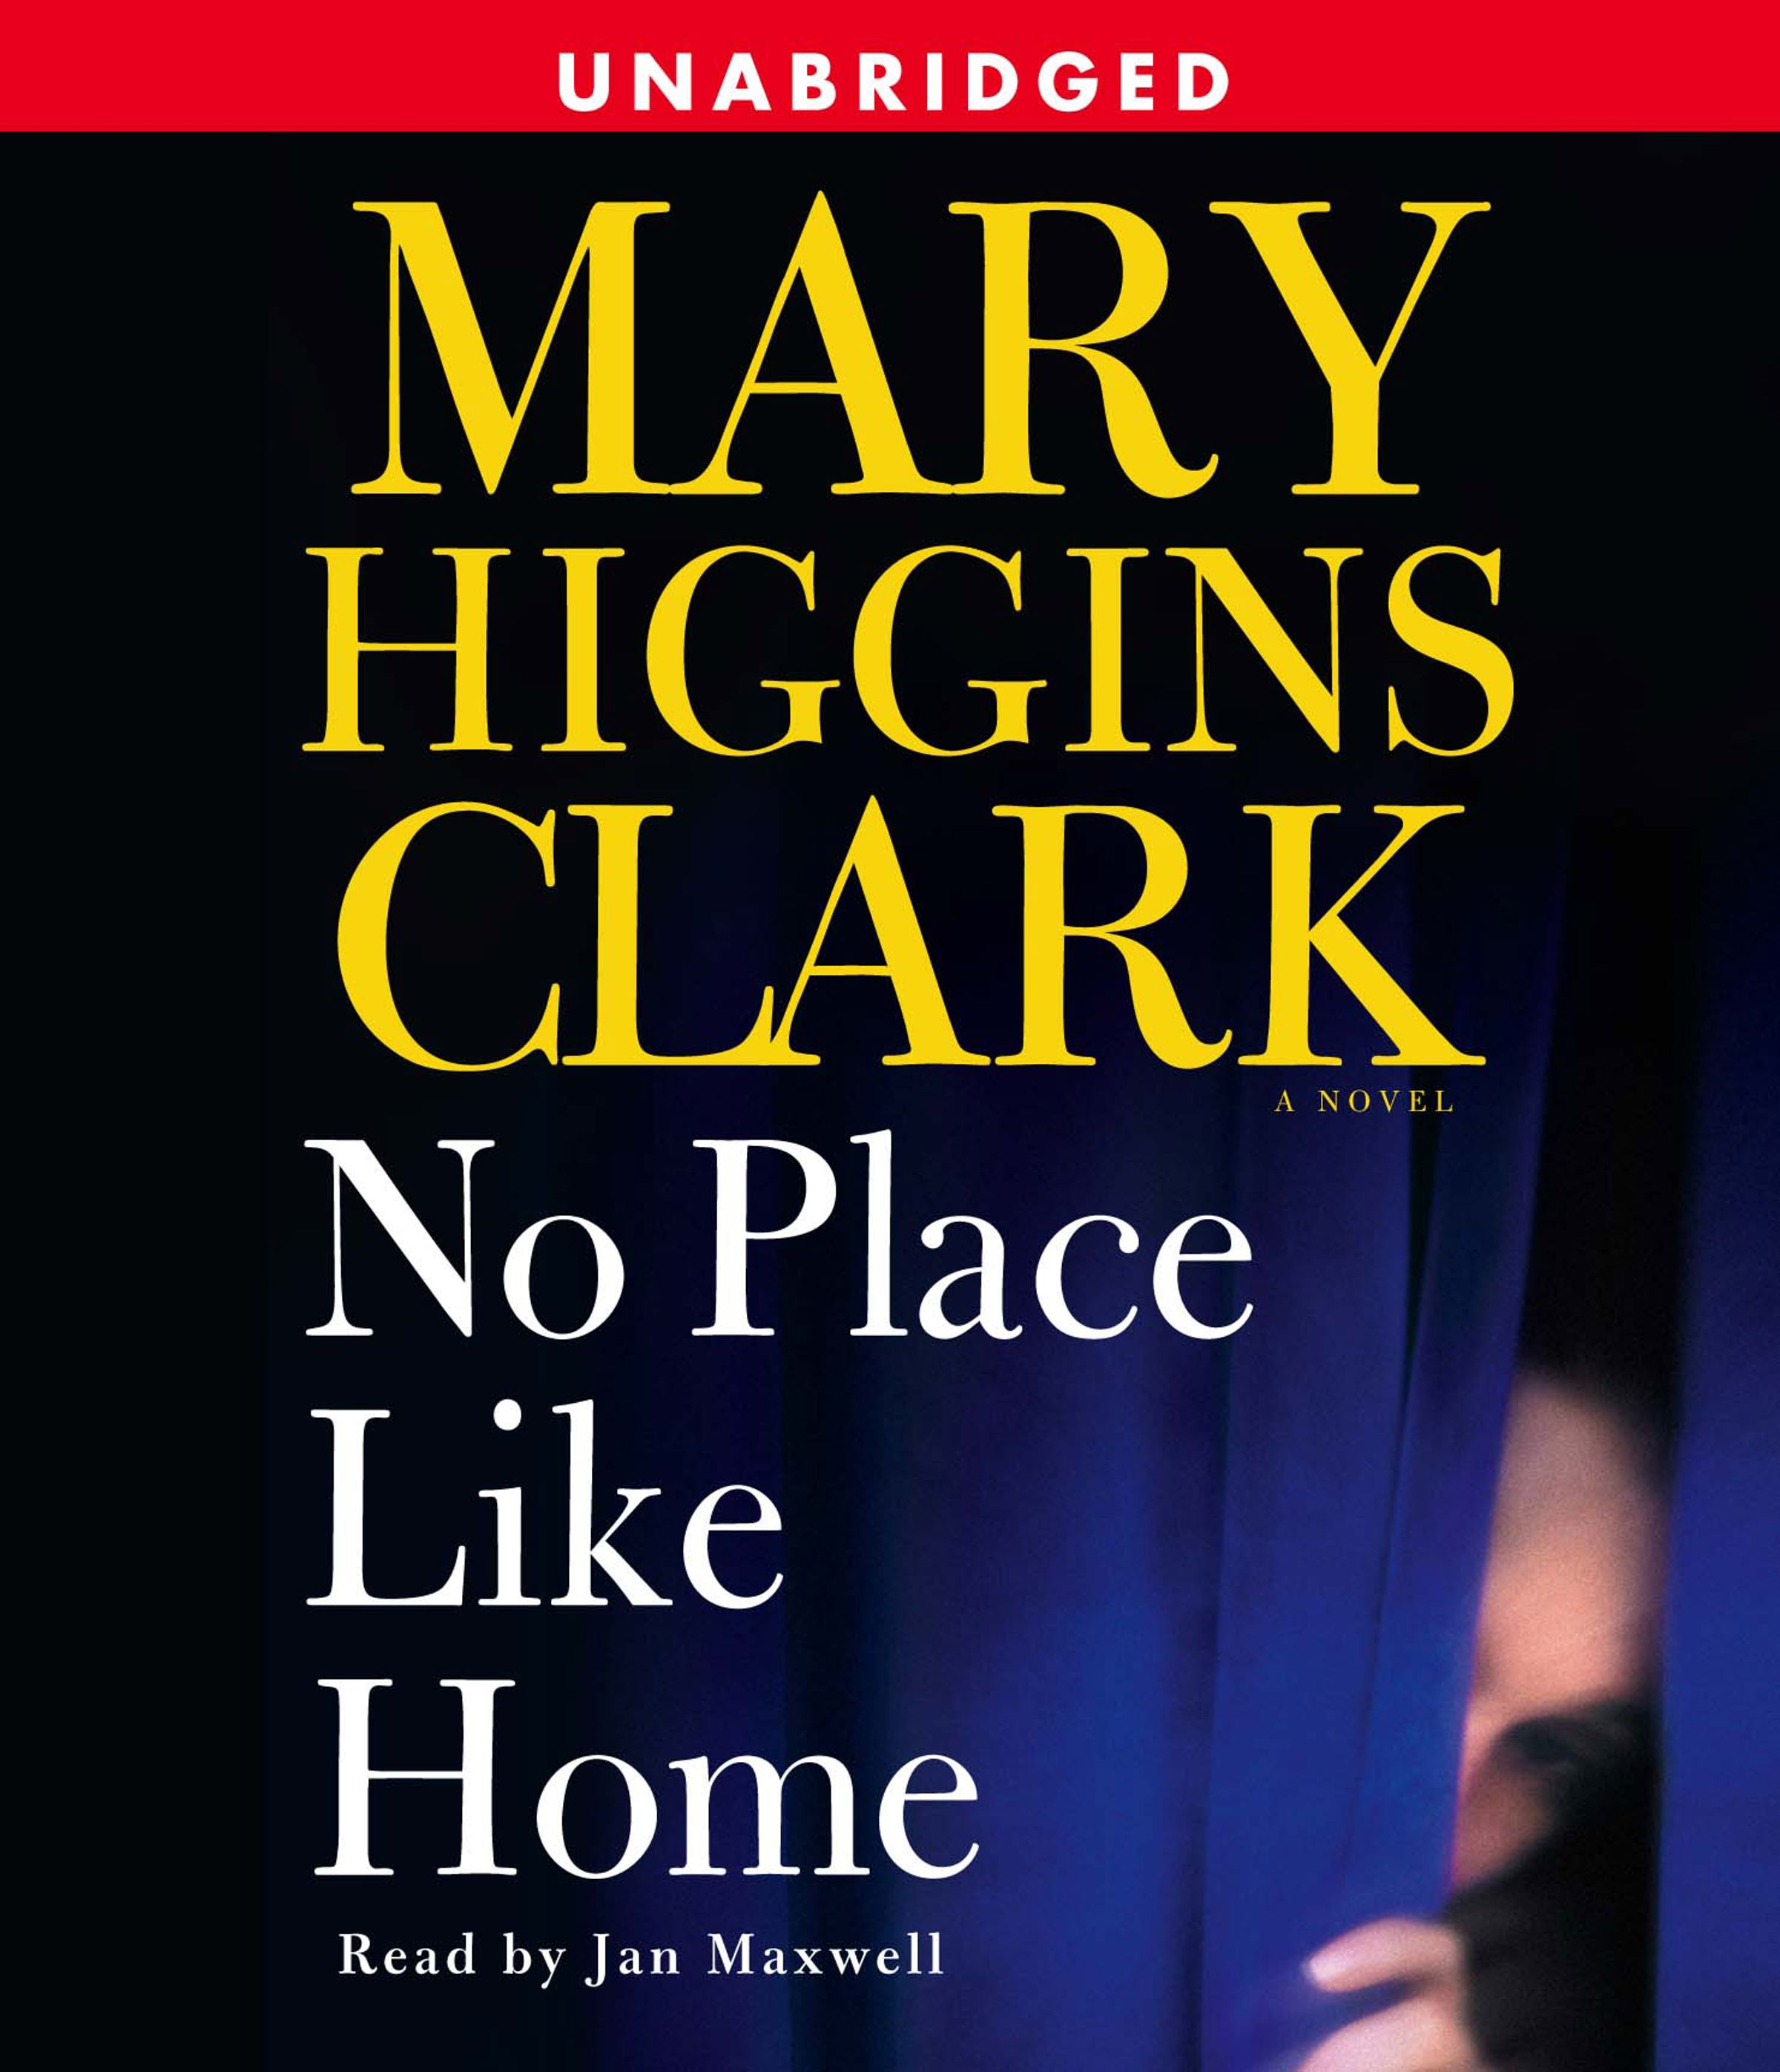 Mary Higgins Clark Mejores Libros No Place Like Home Audiobook By Mary Higgins Clark Jan